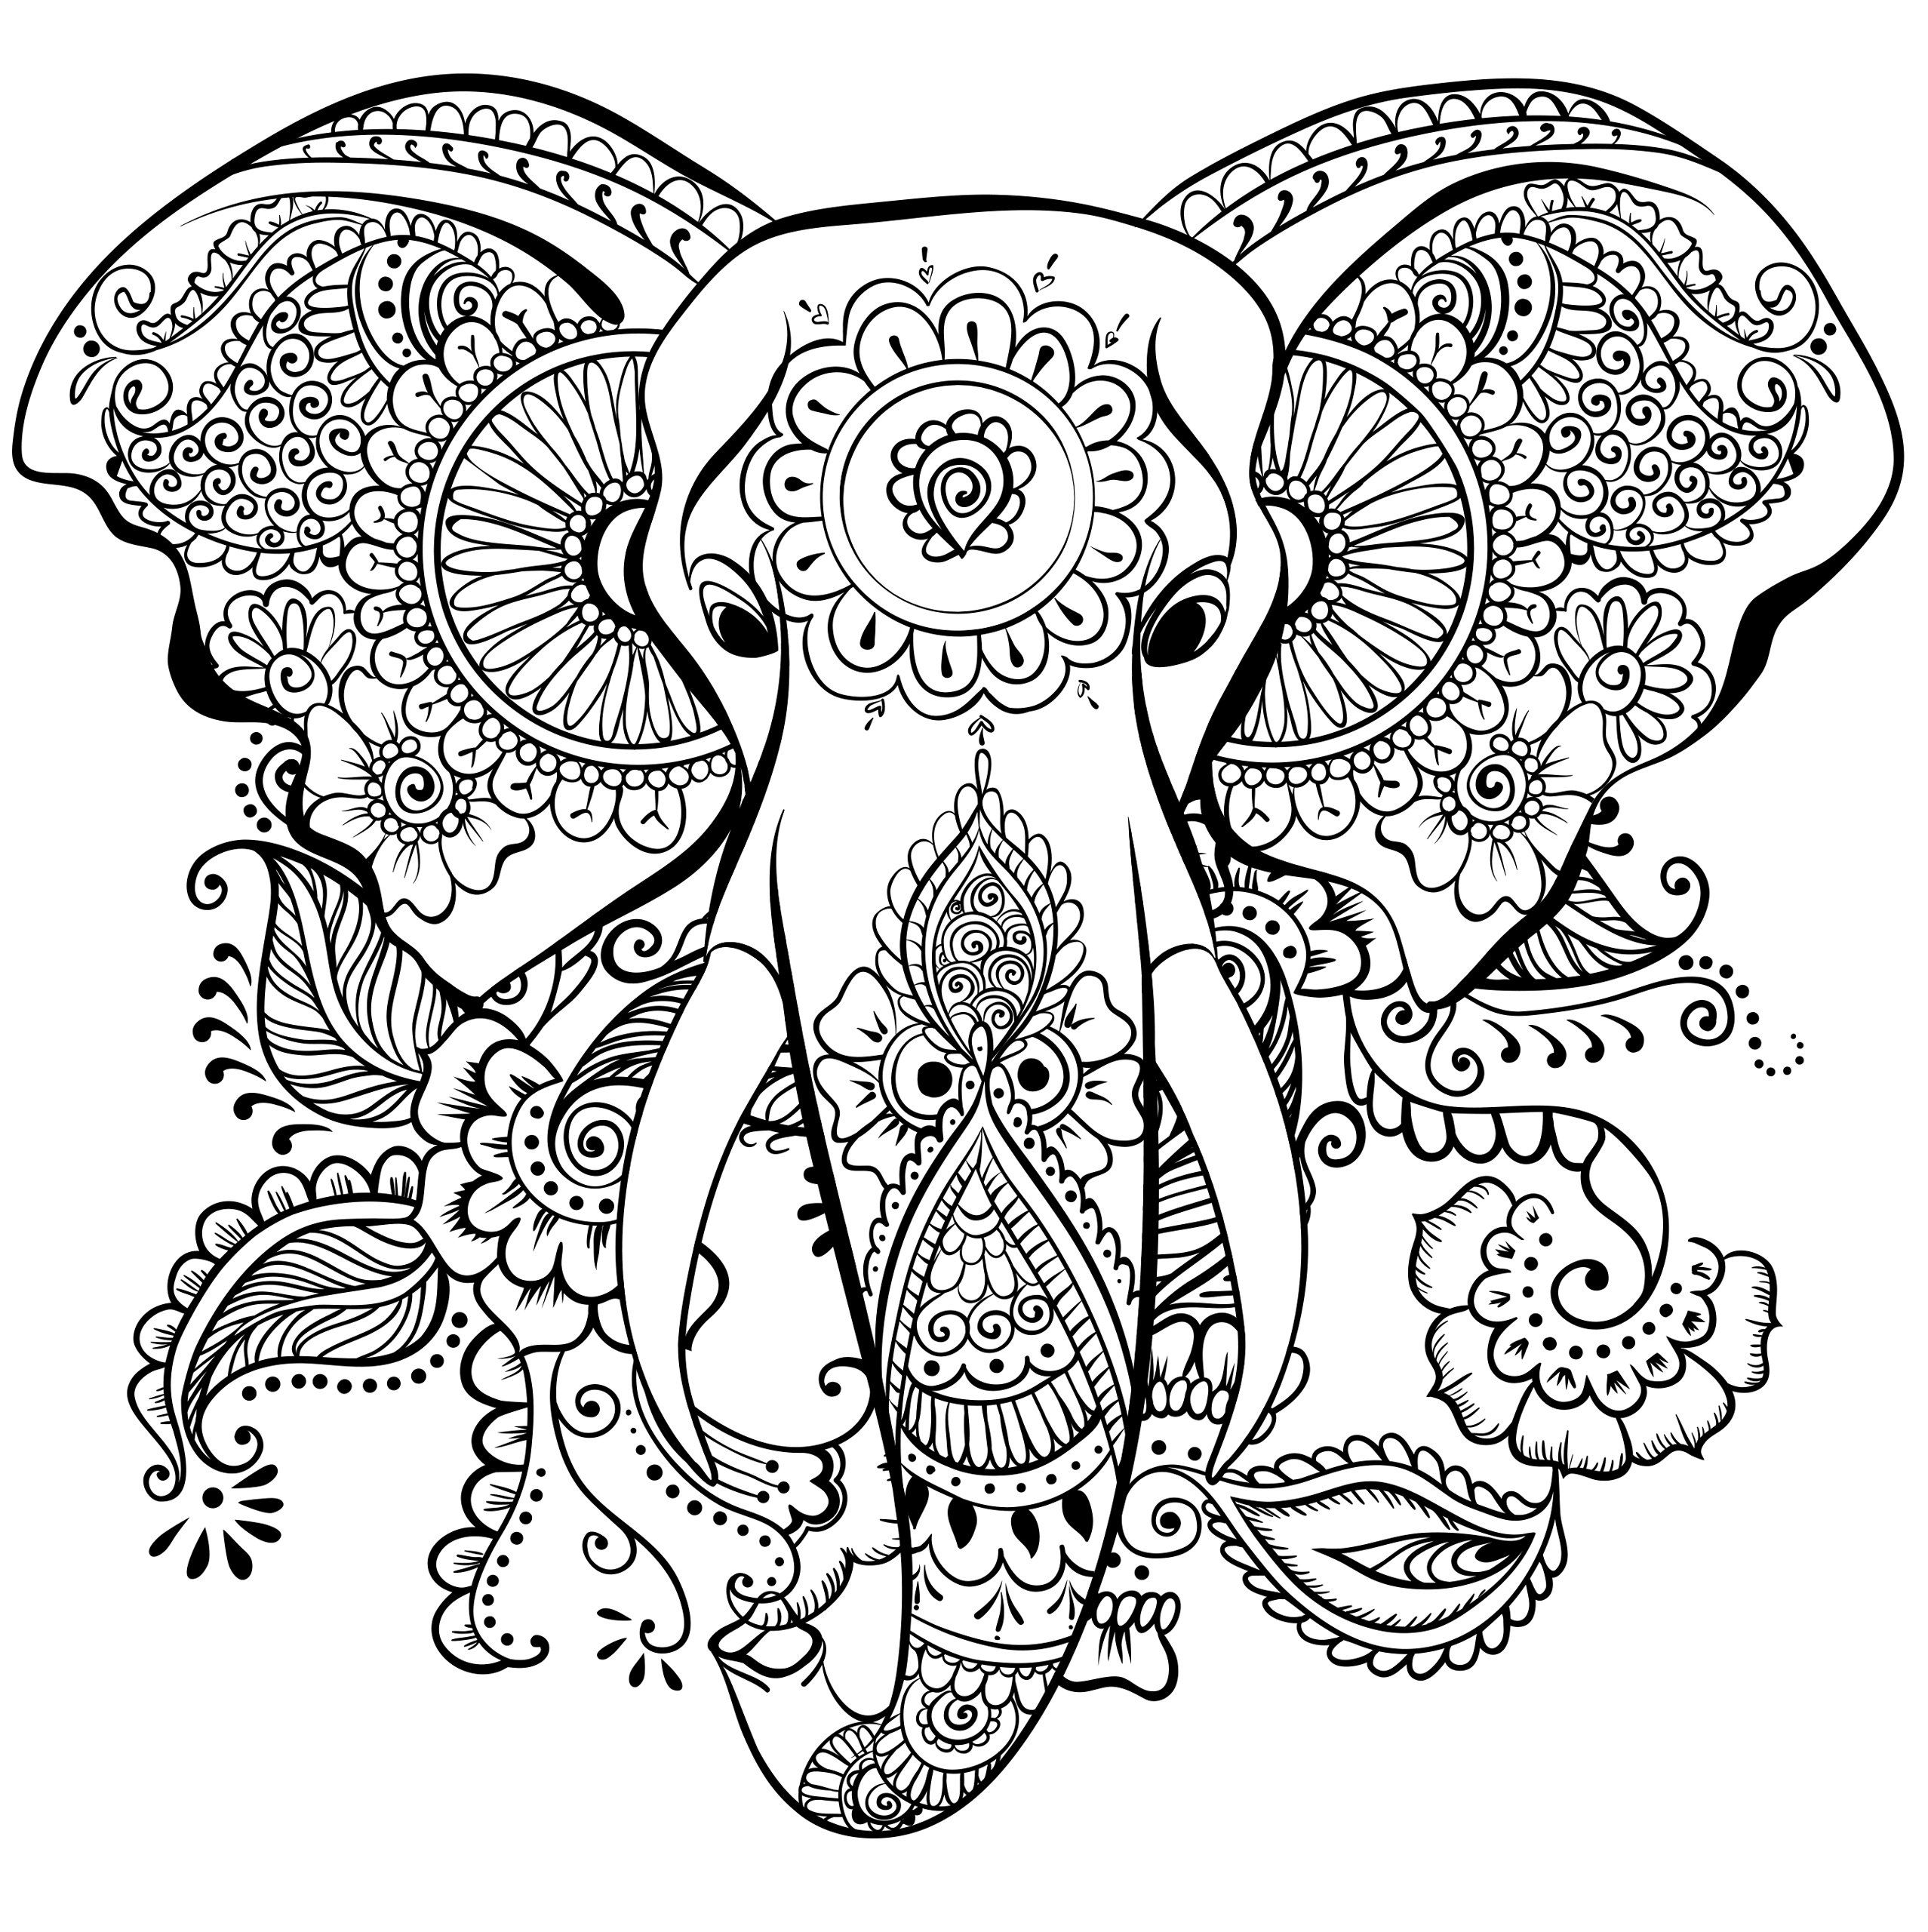 Wild at heart adult coloring book 31 stress relieving designs artists